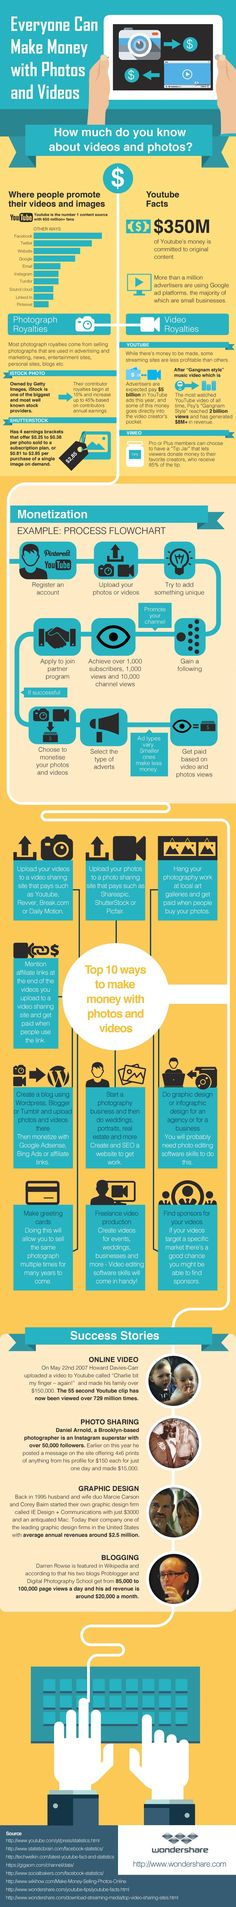 How You Can Make Money with Videos and Photos  #marketing #infographic